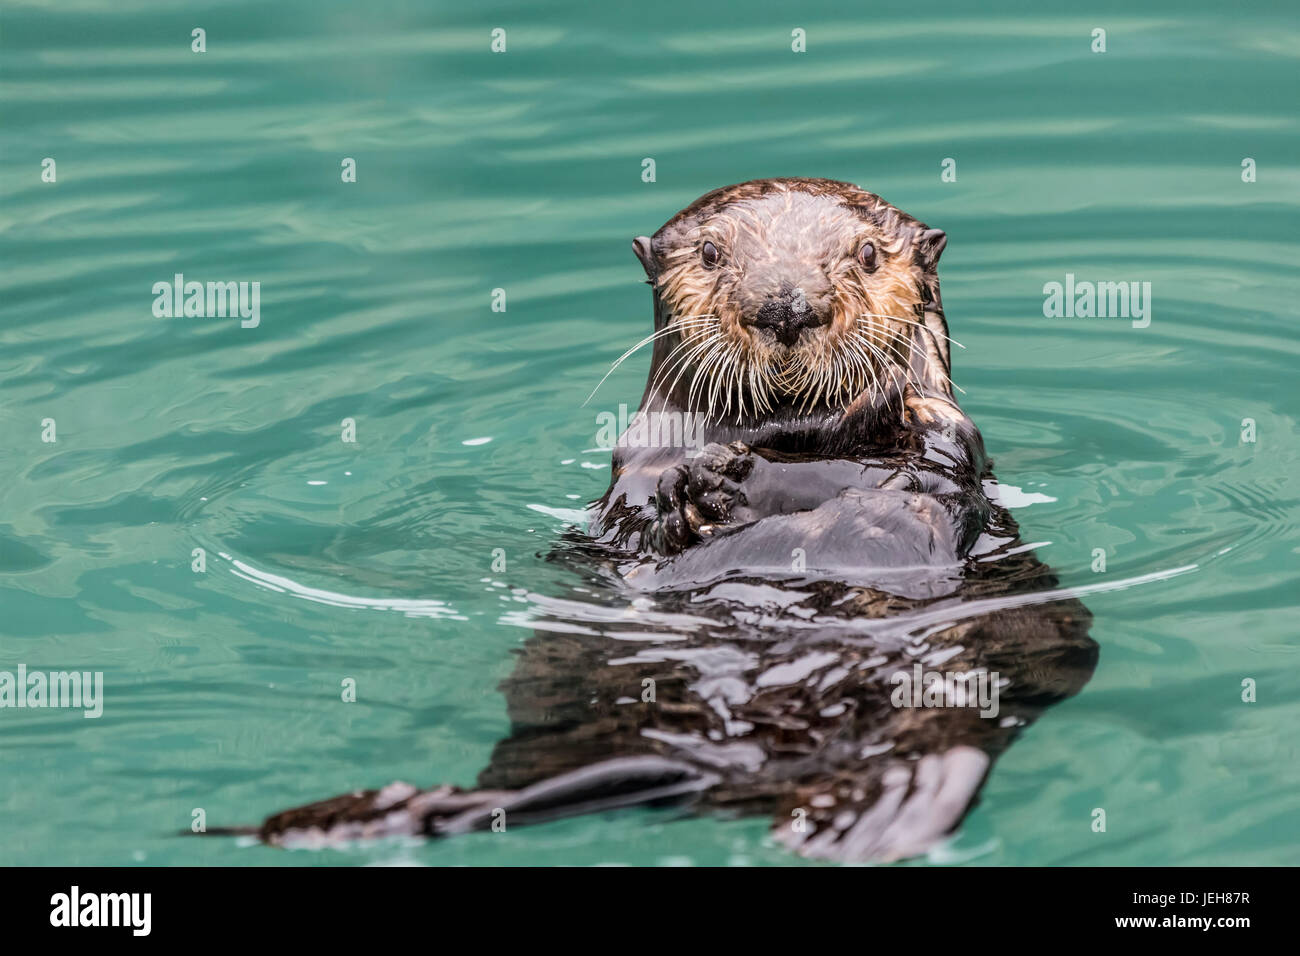 Close-up of a Sea Otter (Enhydra lutris) floating on it's back, looking towards the camera, South-central Alaska Stock Photo